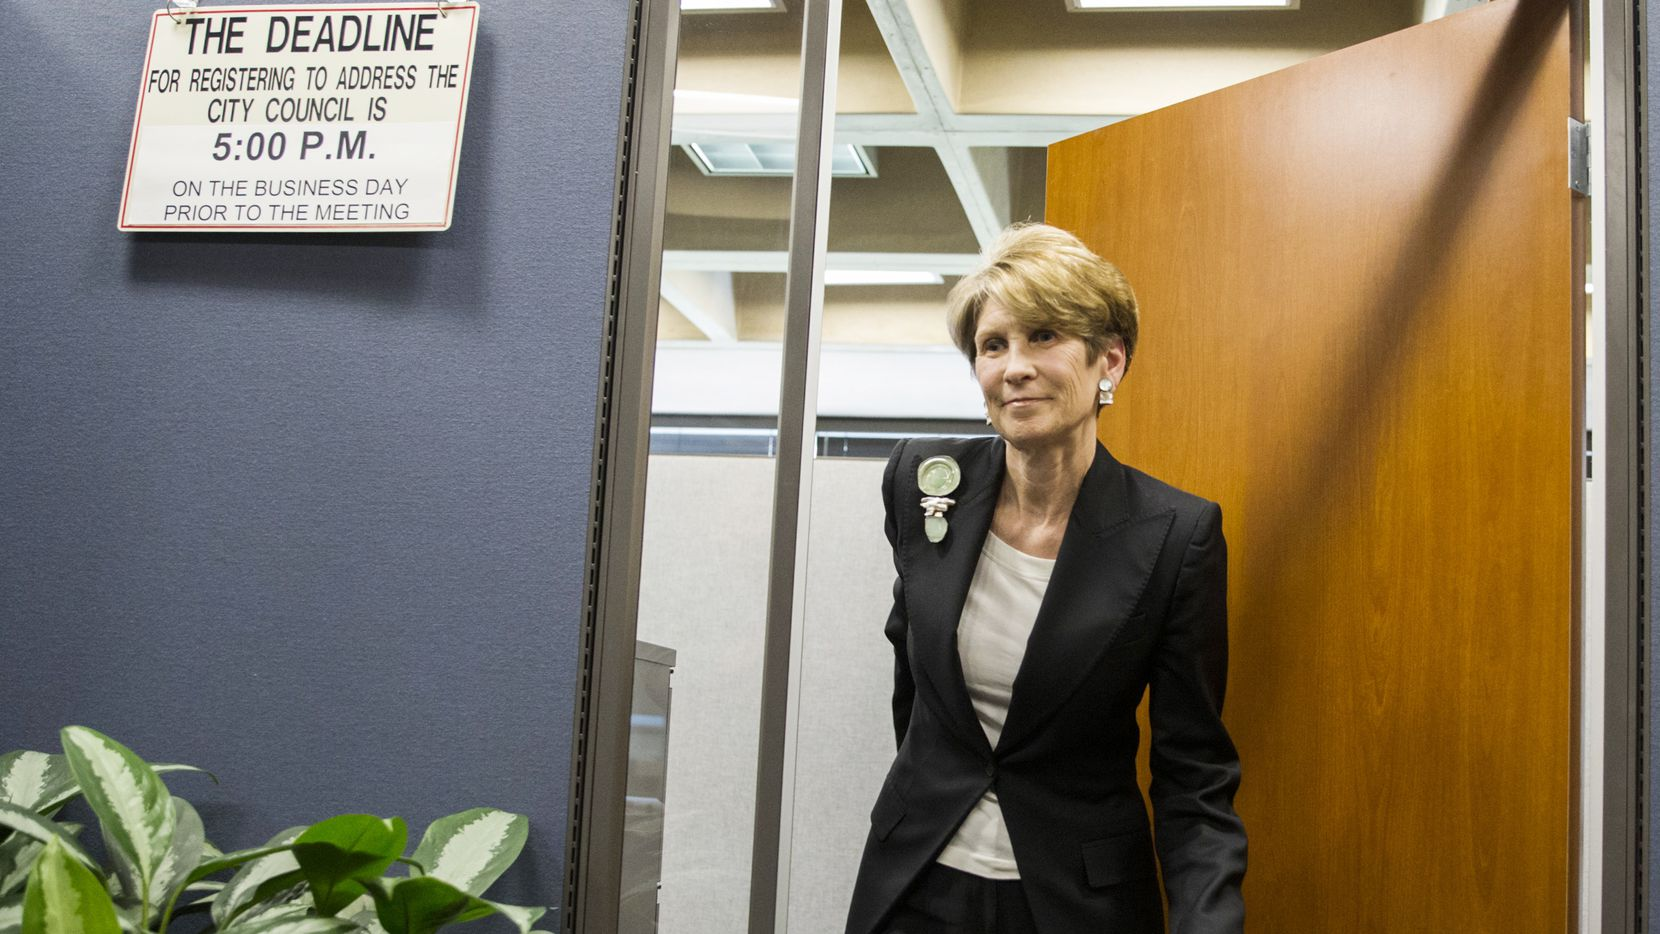 Former Dallas Mayor Laura Miller speaks to reporters at City Hall as she leaves the city secretary's office after filing the required petition signatures to secure a place on the ballot for Dallas City Council District 13.